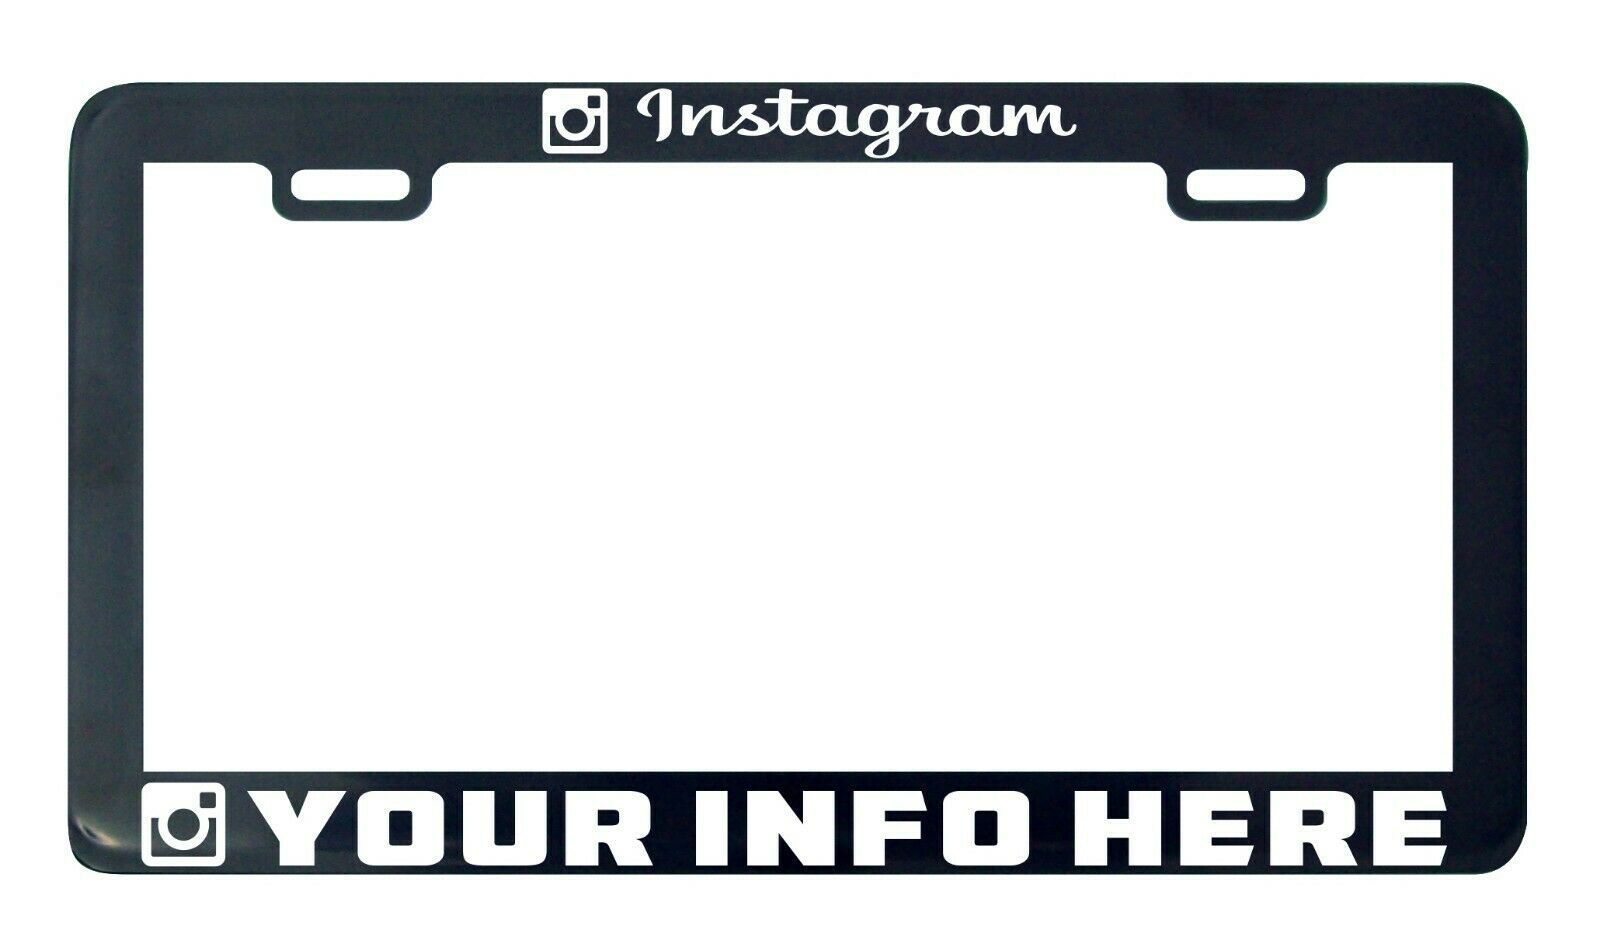 Primary image for Instagram Camera Design your own custom personalize license plate frame holder